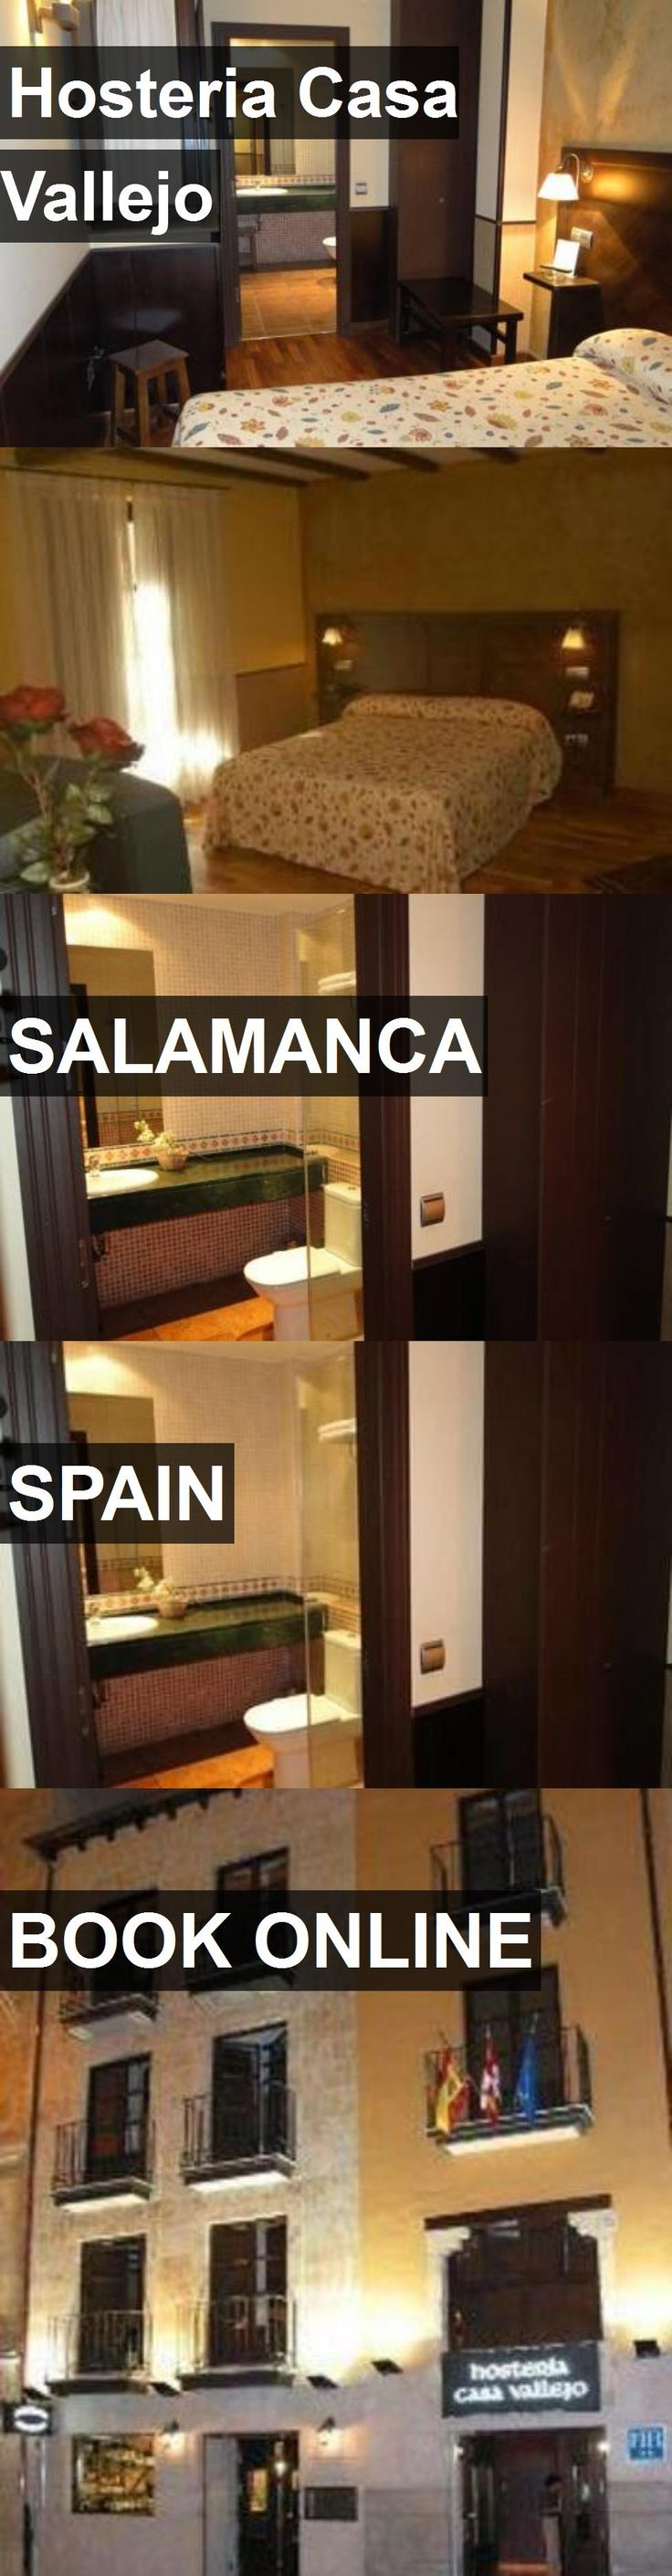 Hotel Hosteria Casa Vallejo in Salamanca, Spain. For more information, photos, reviews and best prices please follow the link. #Spain #Salamanca #travel #vacation #hotel